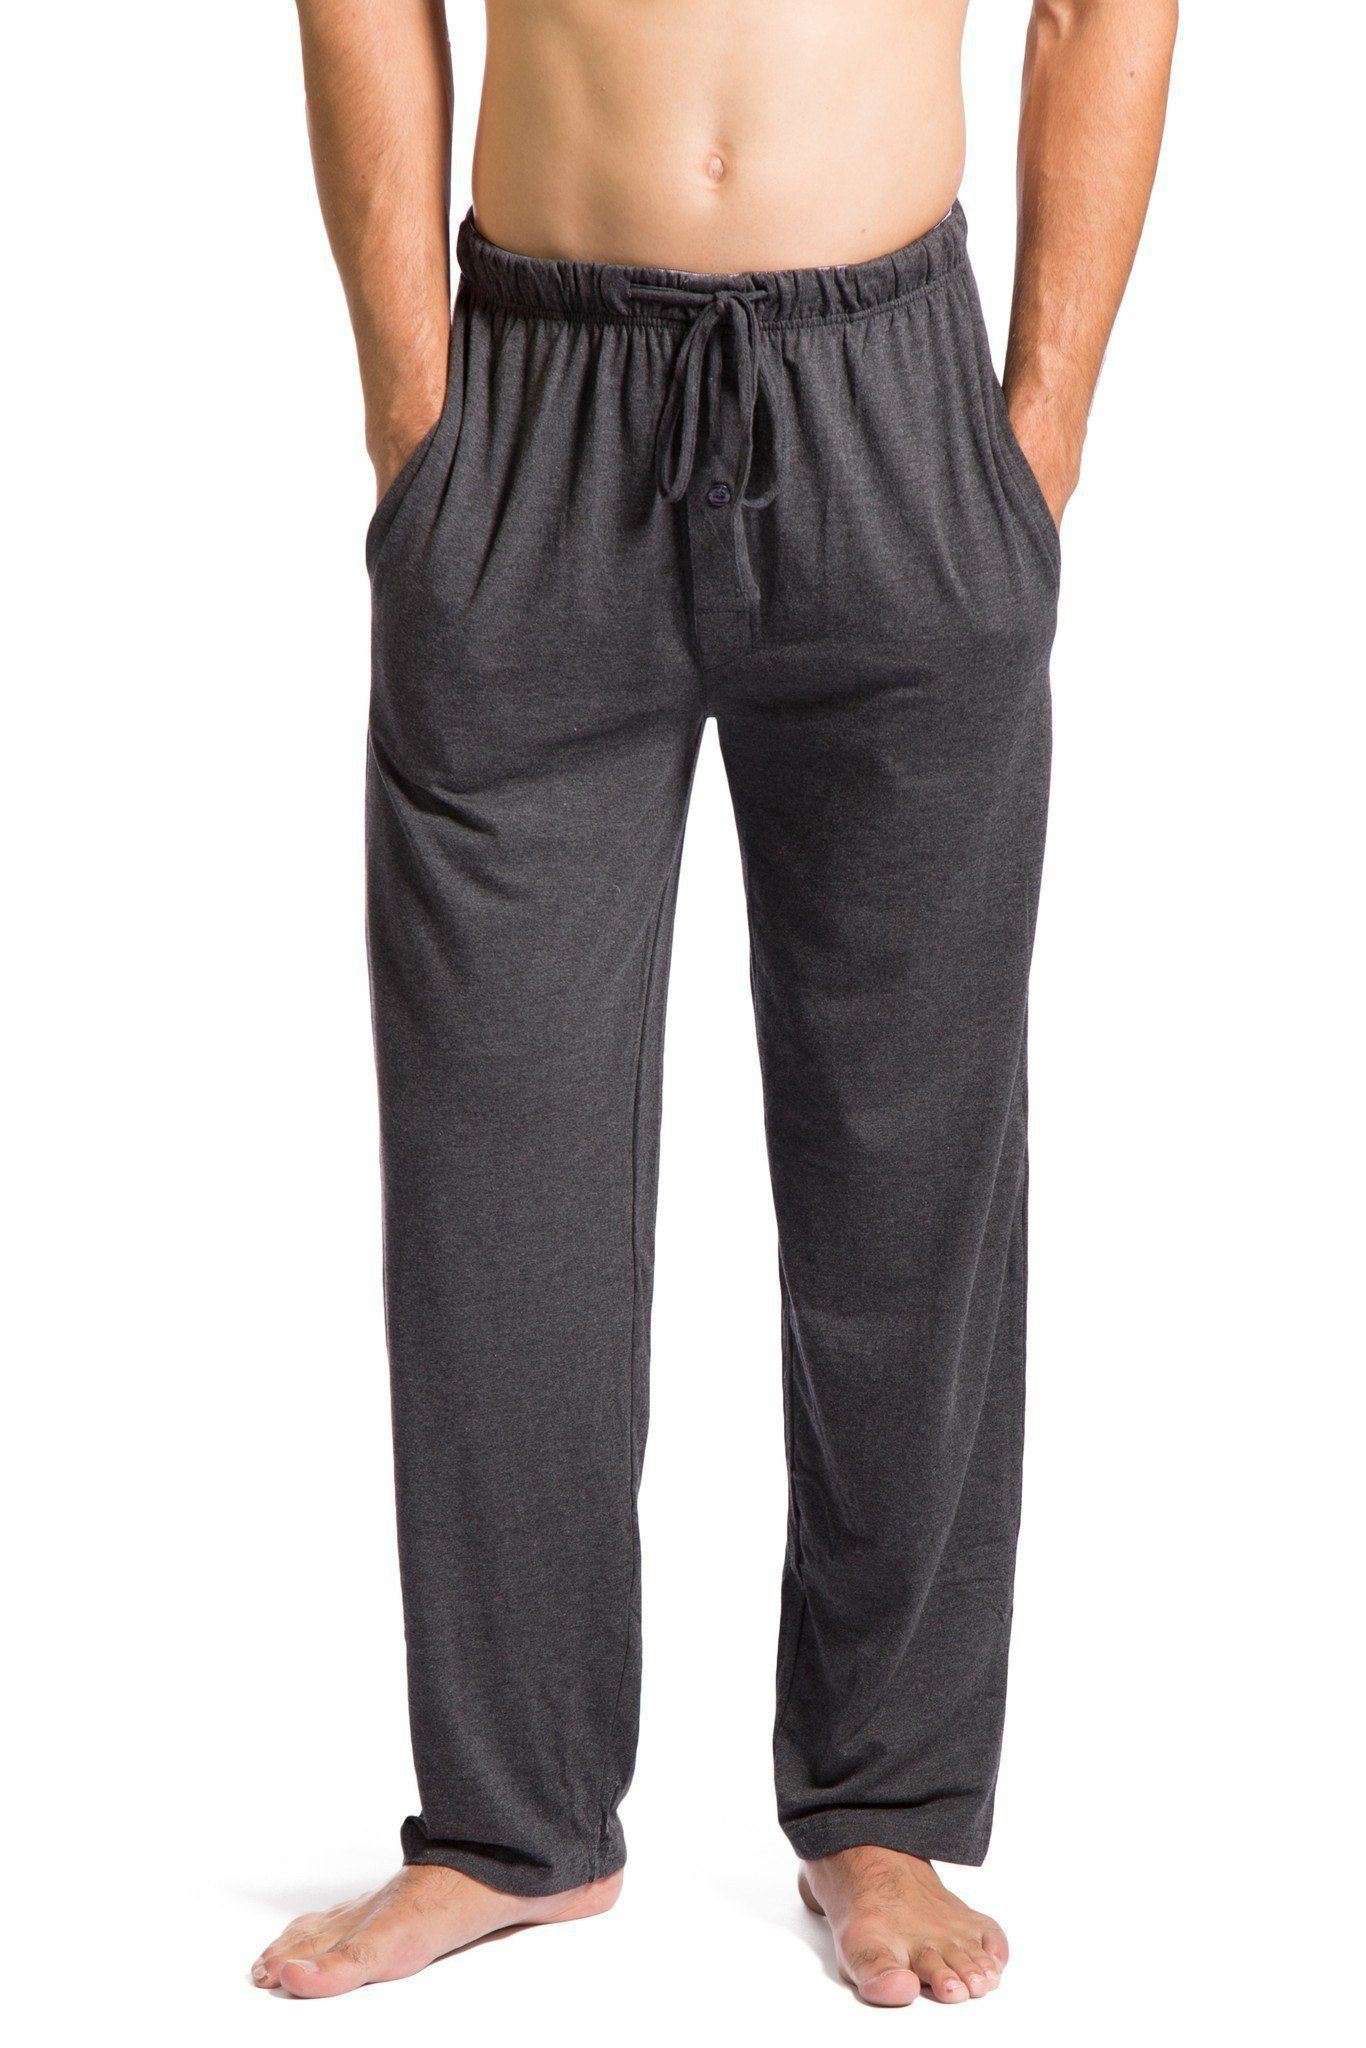 Mens Pyjamas PJ Bottoms Jersey soft Sleep Night Wear  Lounge PANTS WITH POCKETS